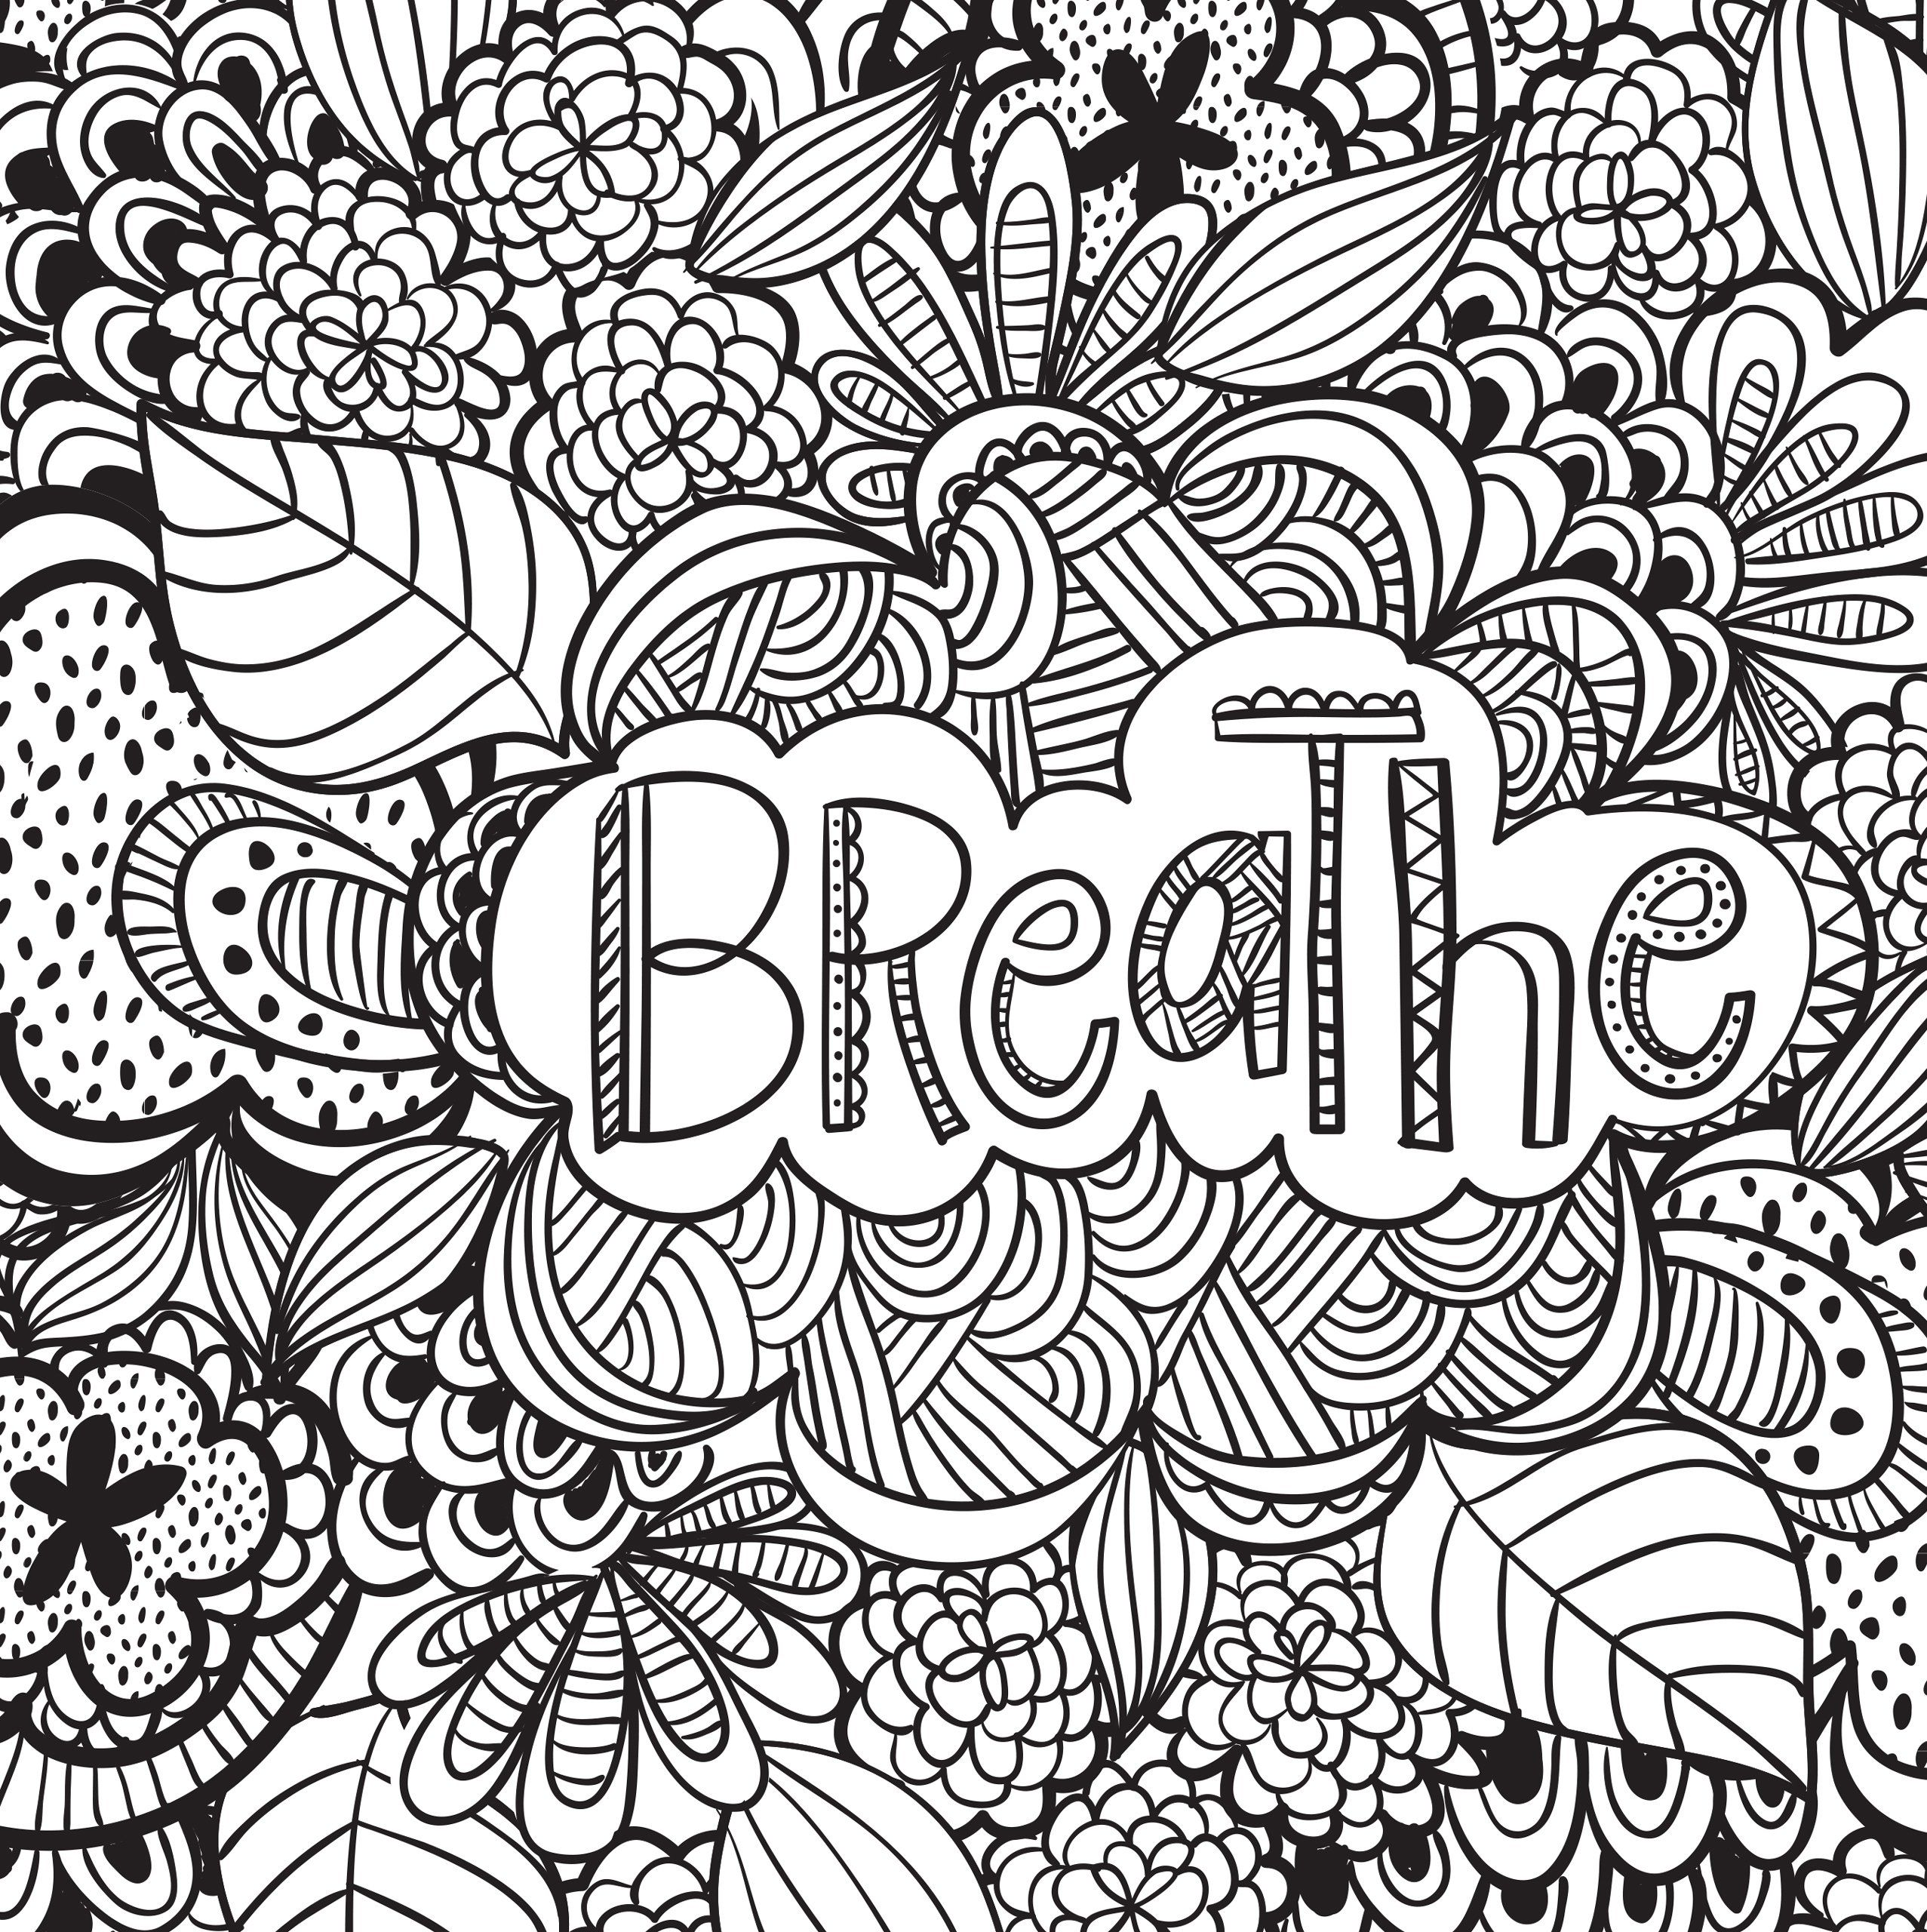 Inspirational Quotes Coloring Pages For Adults : Joyful inspiration adult coloring book stress